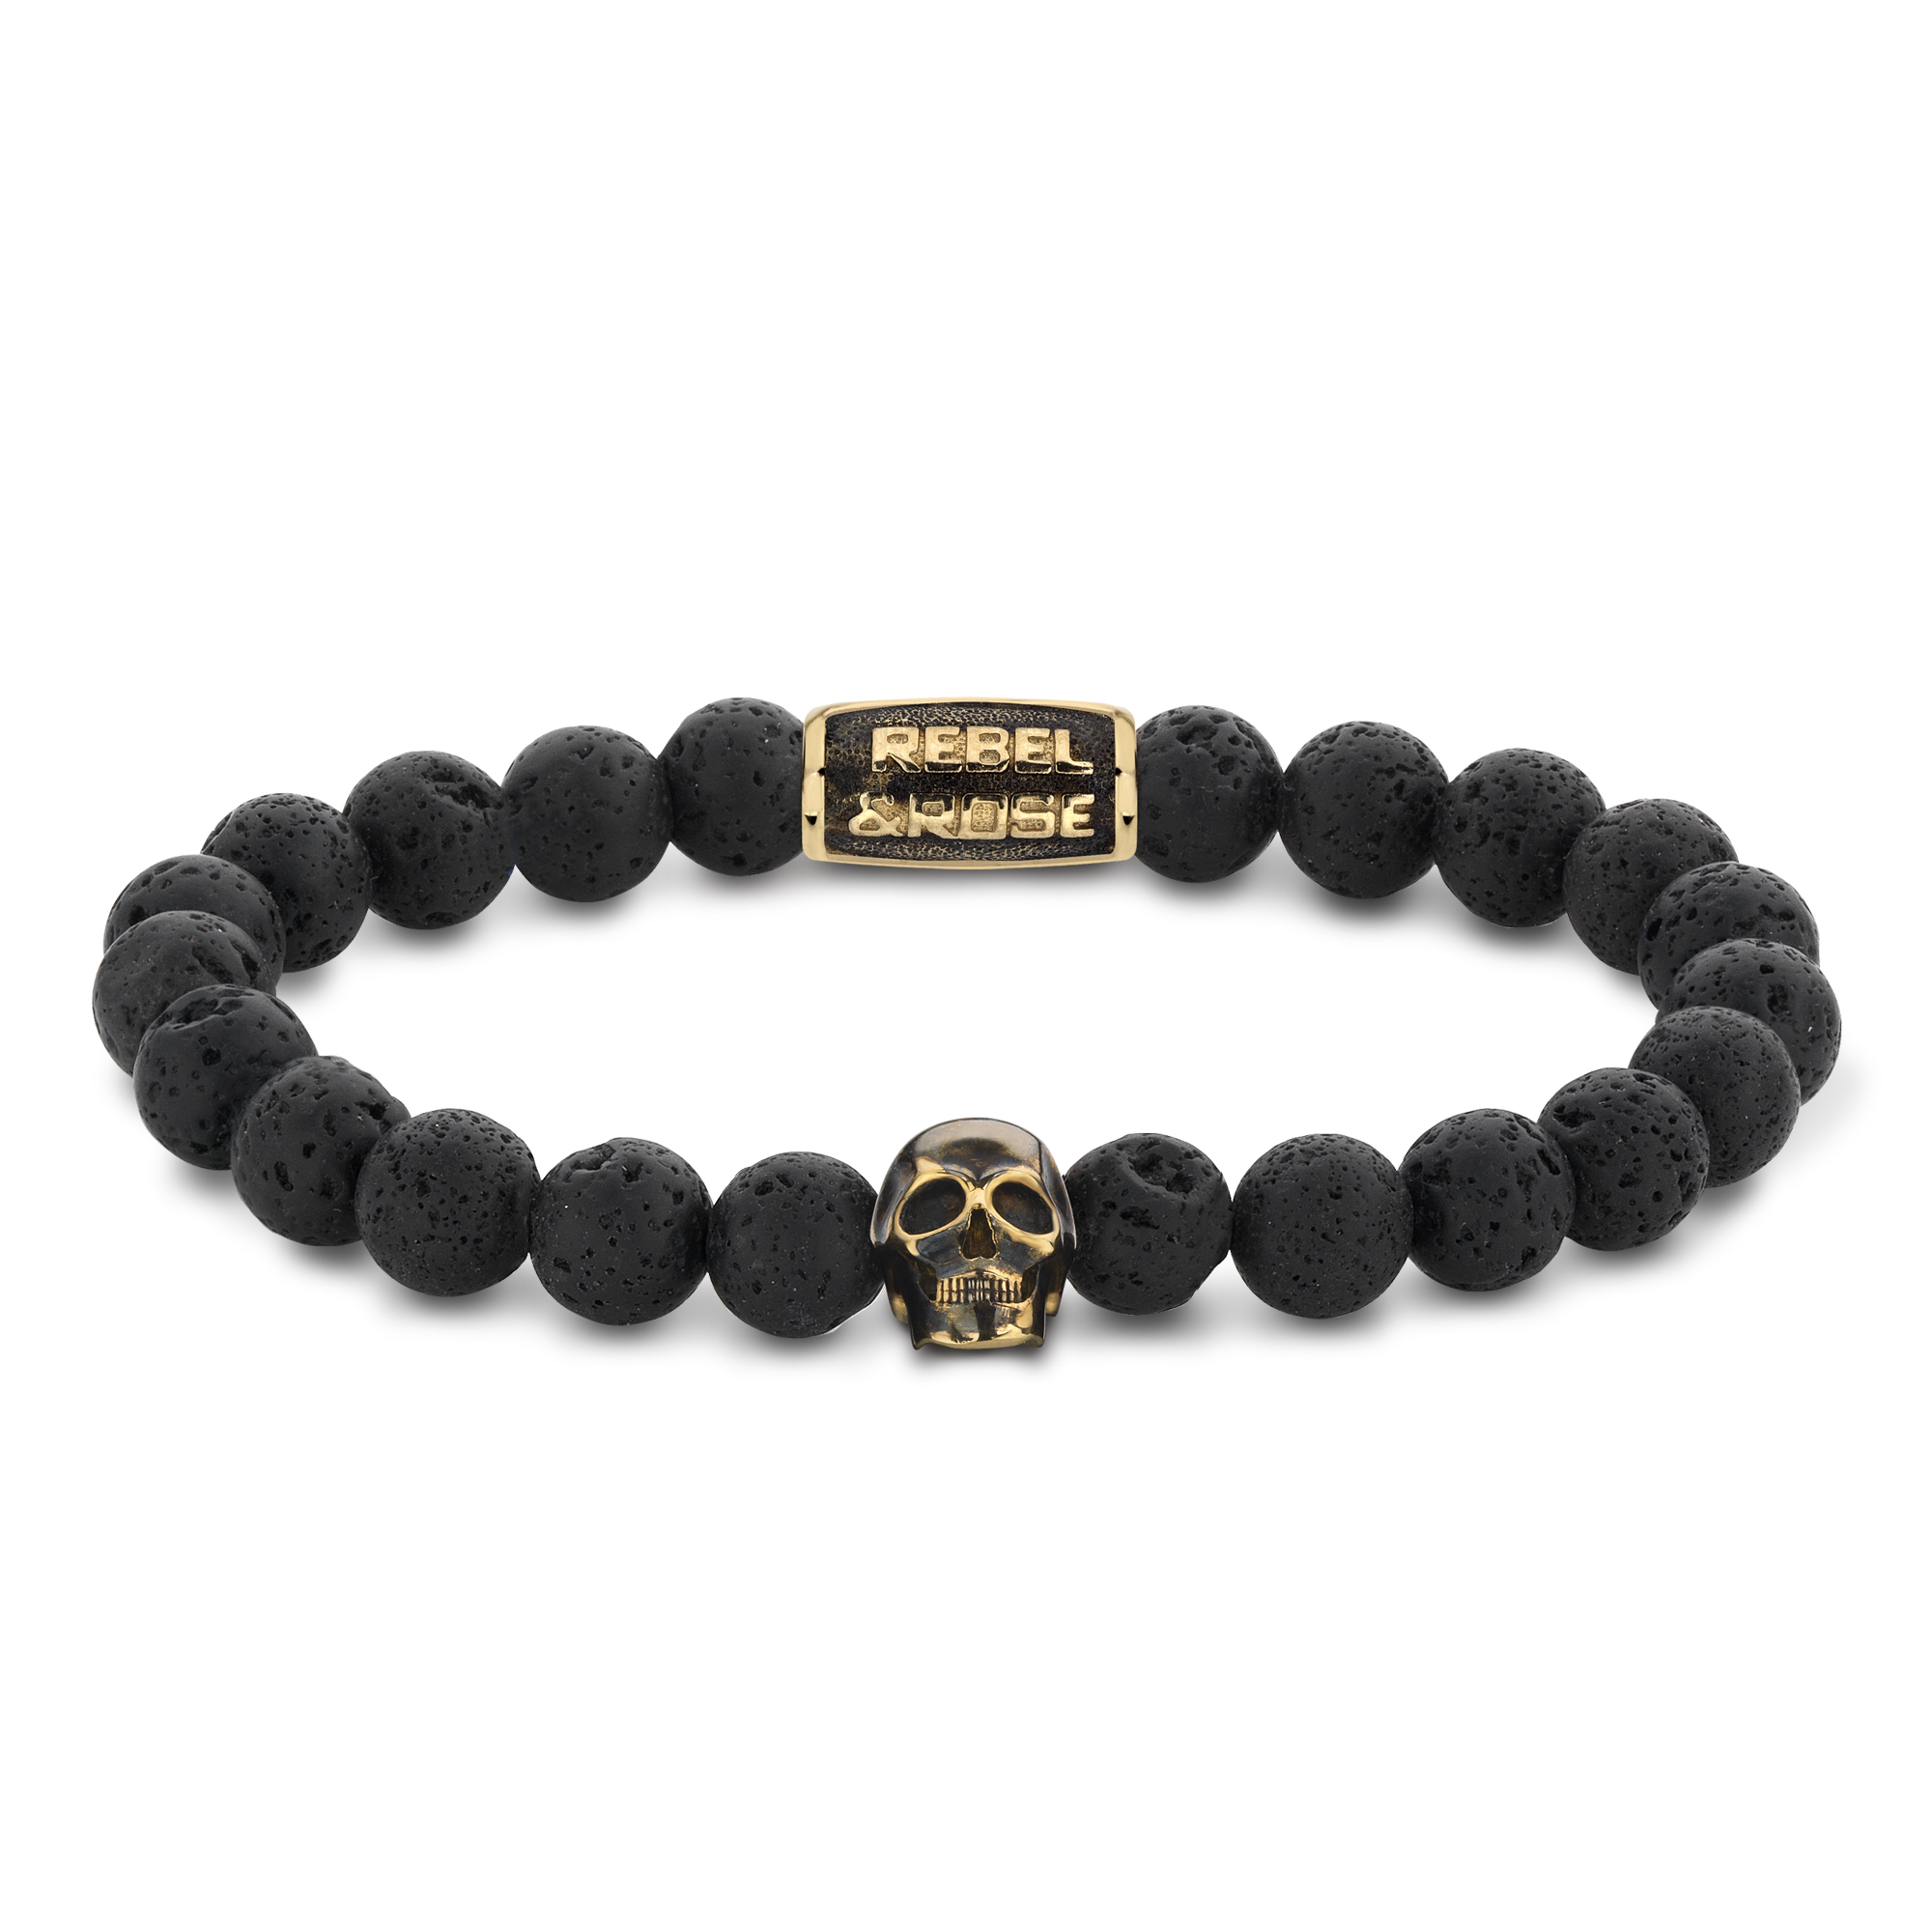 Rebel and Rose RR-SK002-G-M Armband Skull Black Moon yellow gold plated M 8mm 17.5